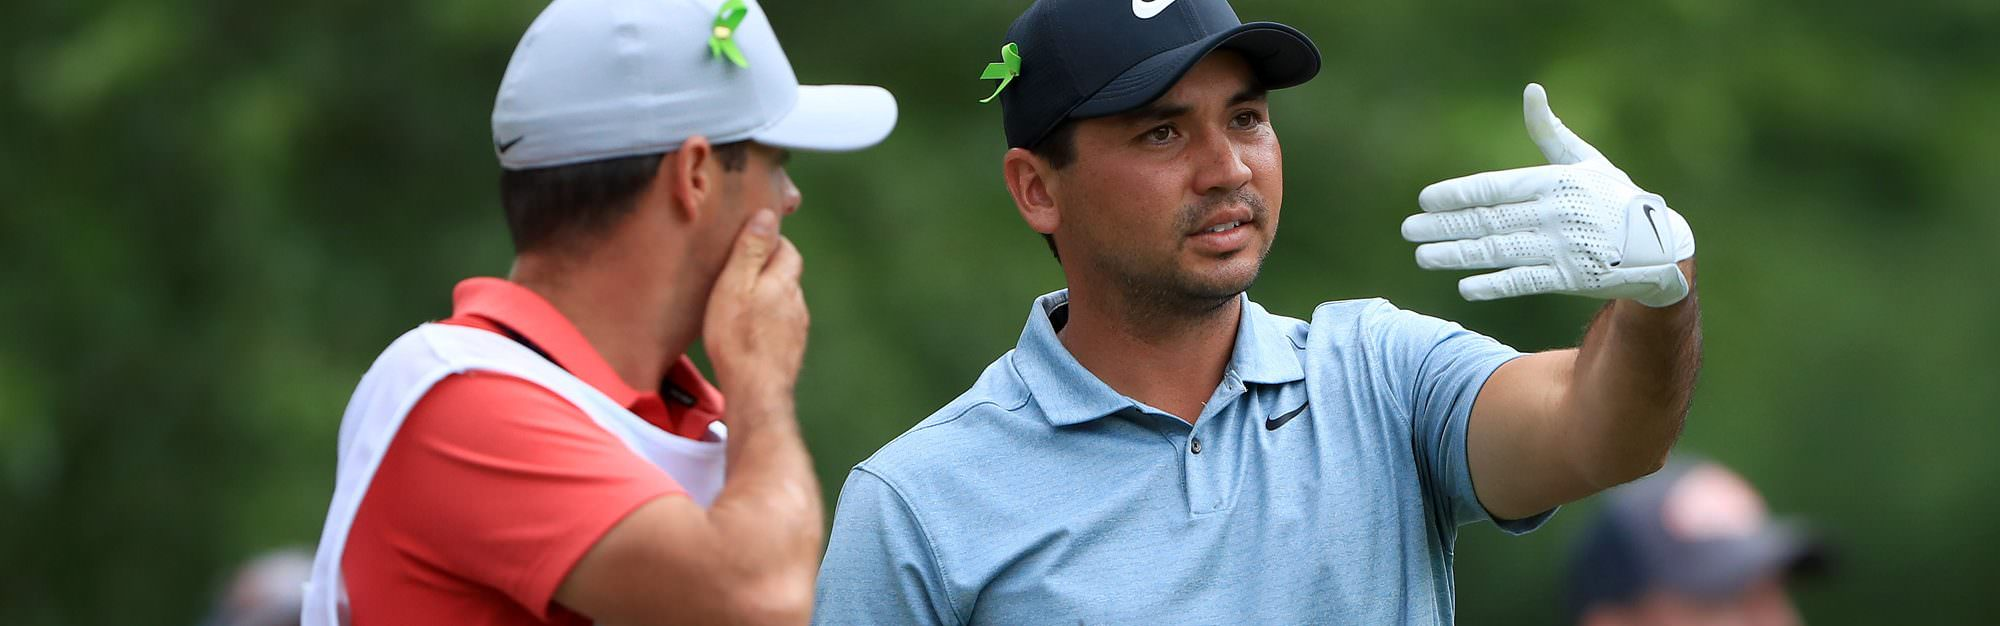 How important is a pre-shot routine? We asked one of the world's best coaches